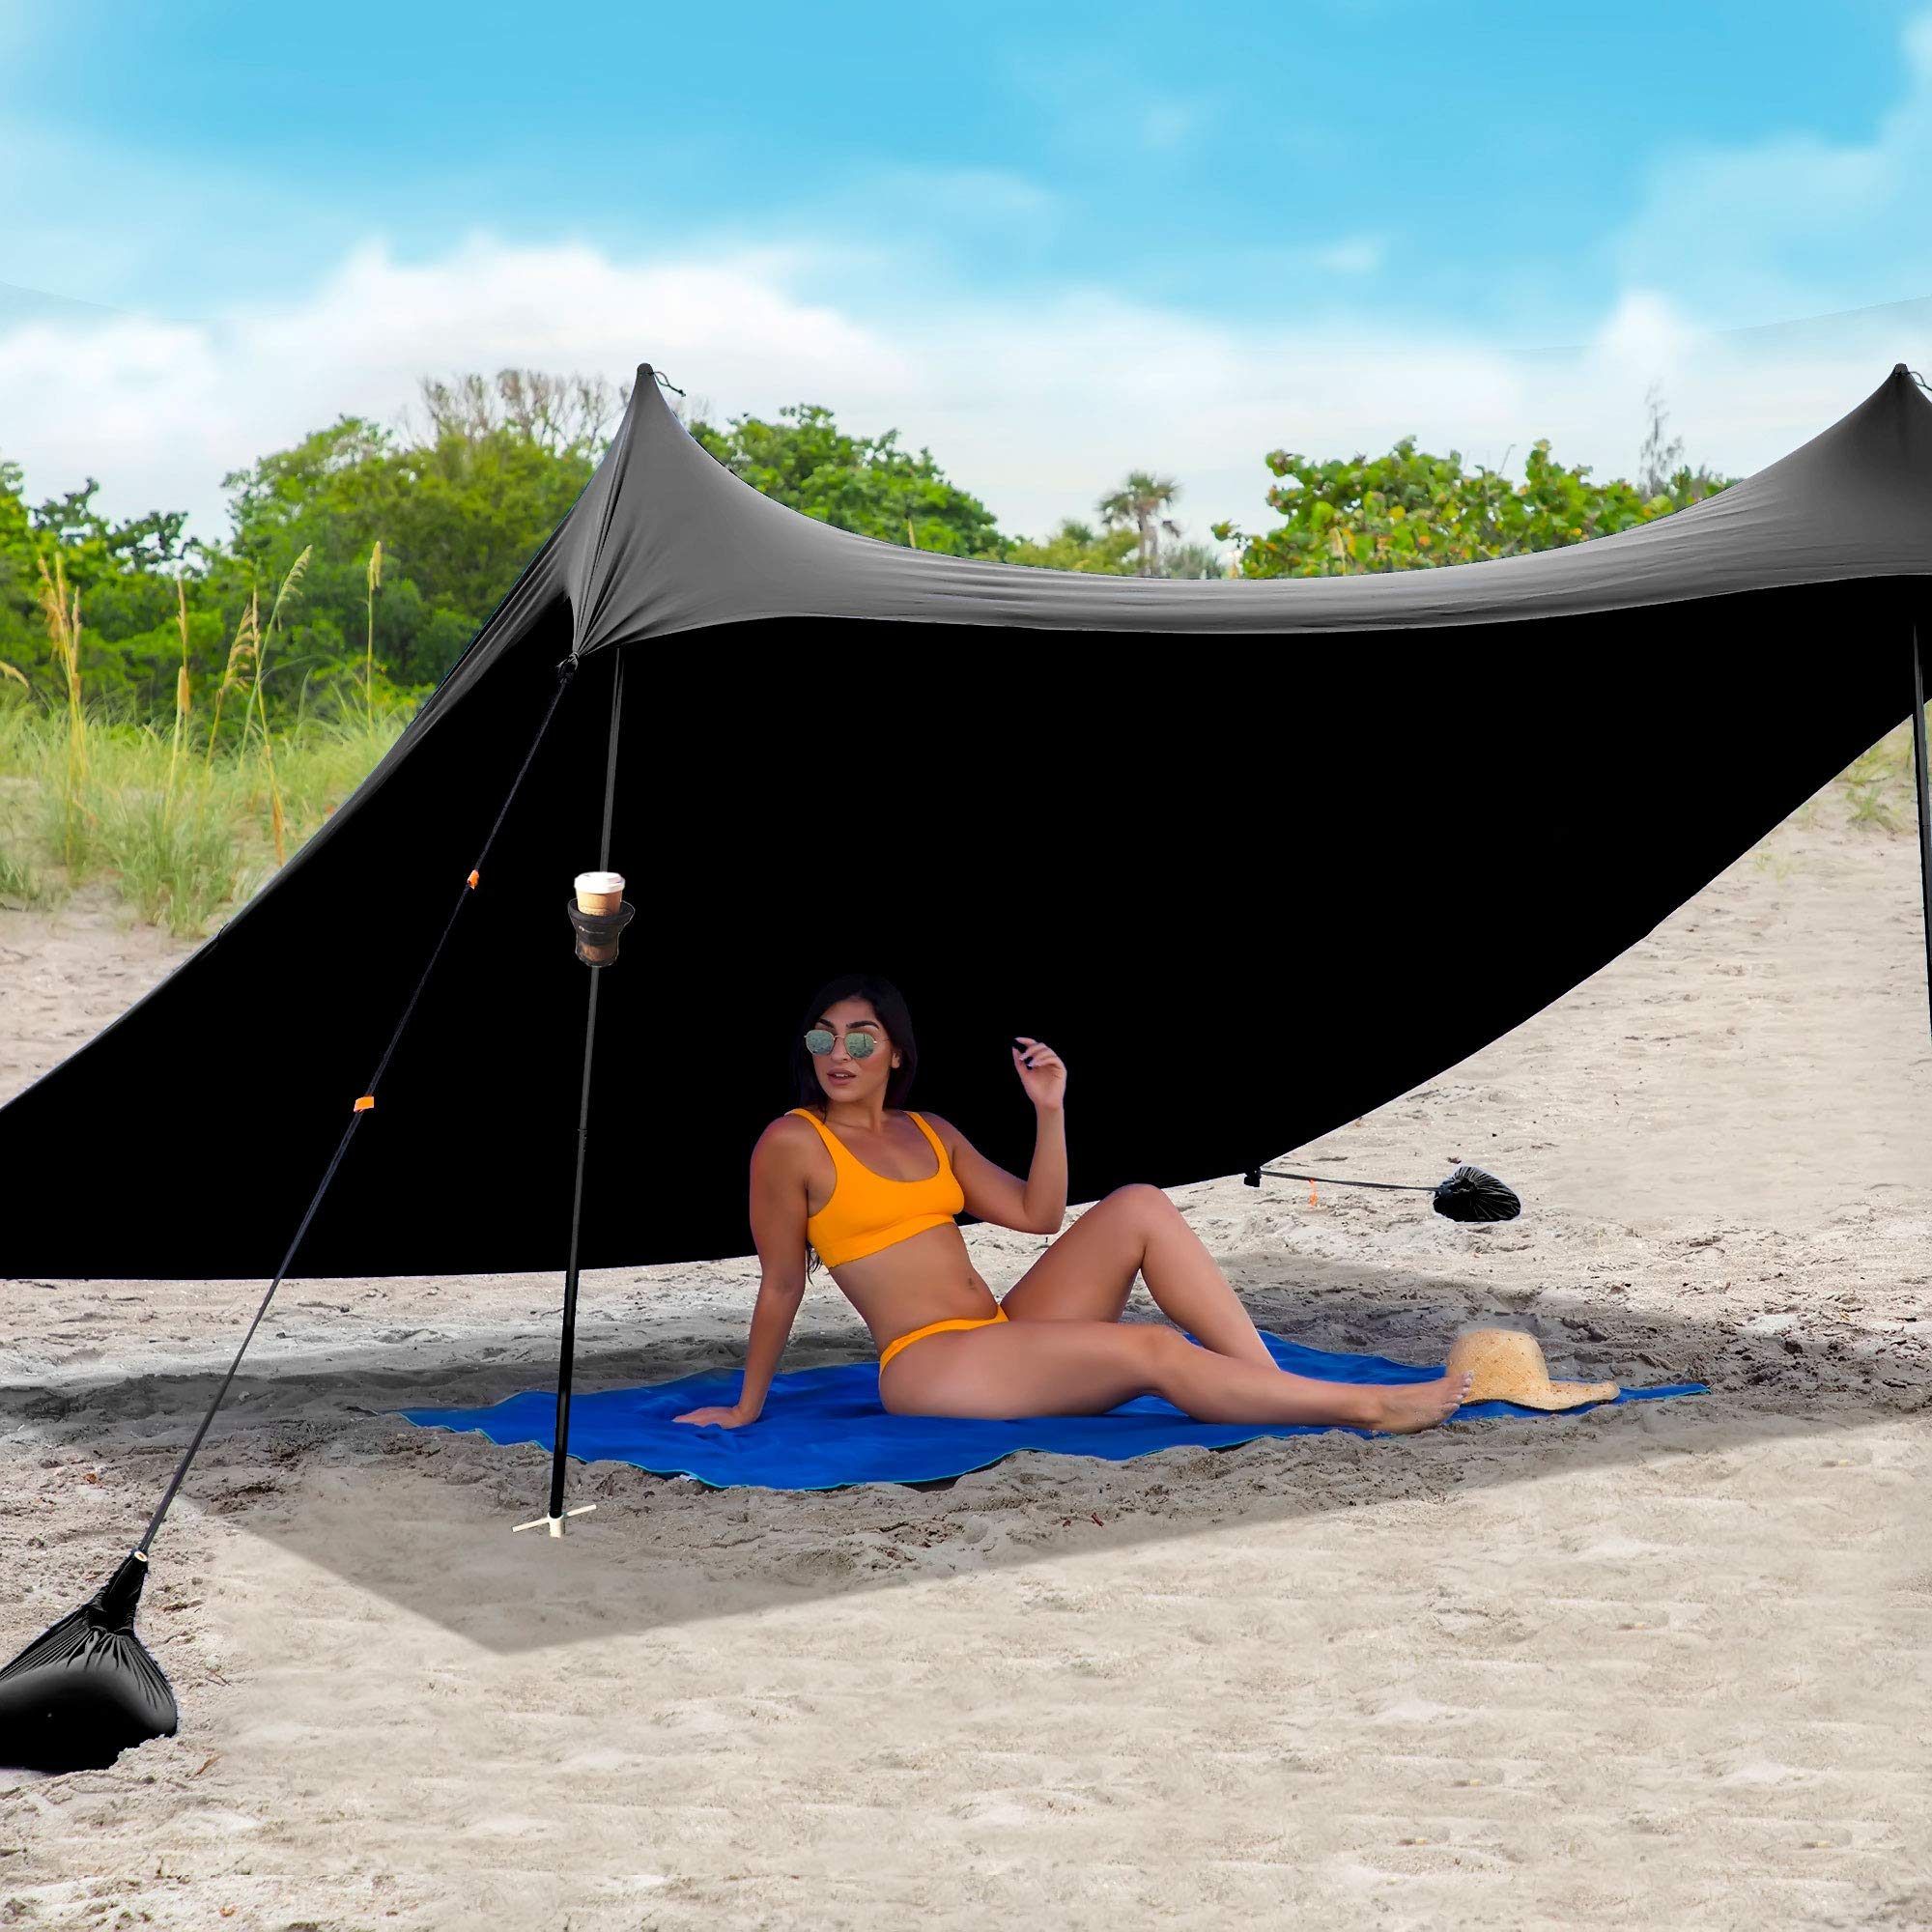 Red Suricata Family Beach Sunshade & 2 Beverage Holders Bundle - Sun Shade Canopy | UPF50 UV Protection | Tent with 4 Aluminum Poles & 4 Pole Anchors (Large, Black)